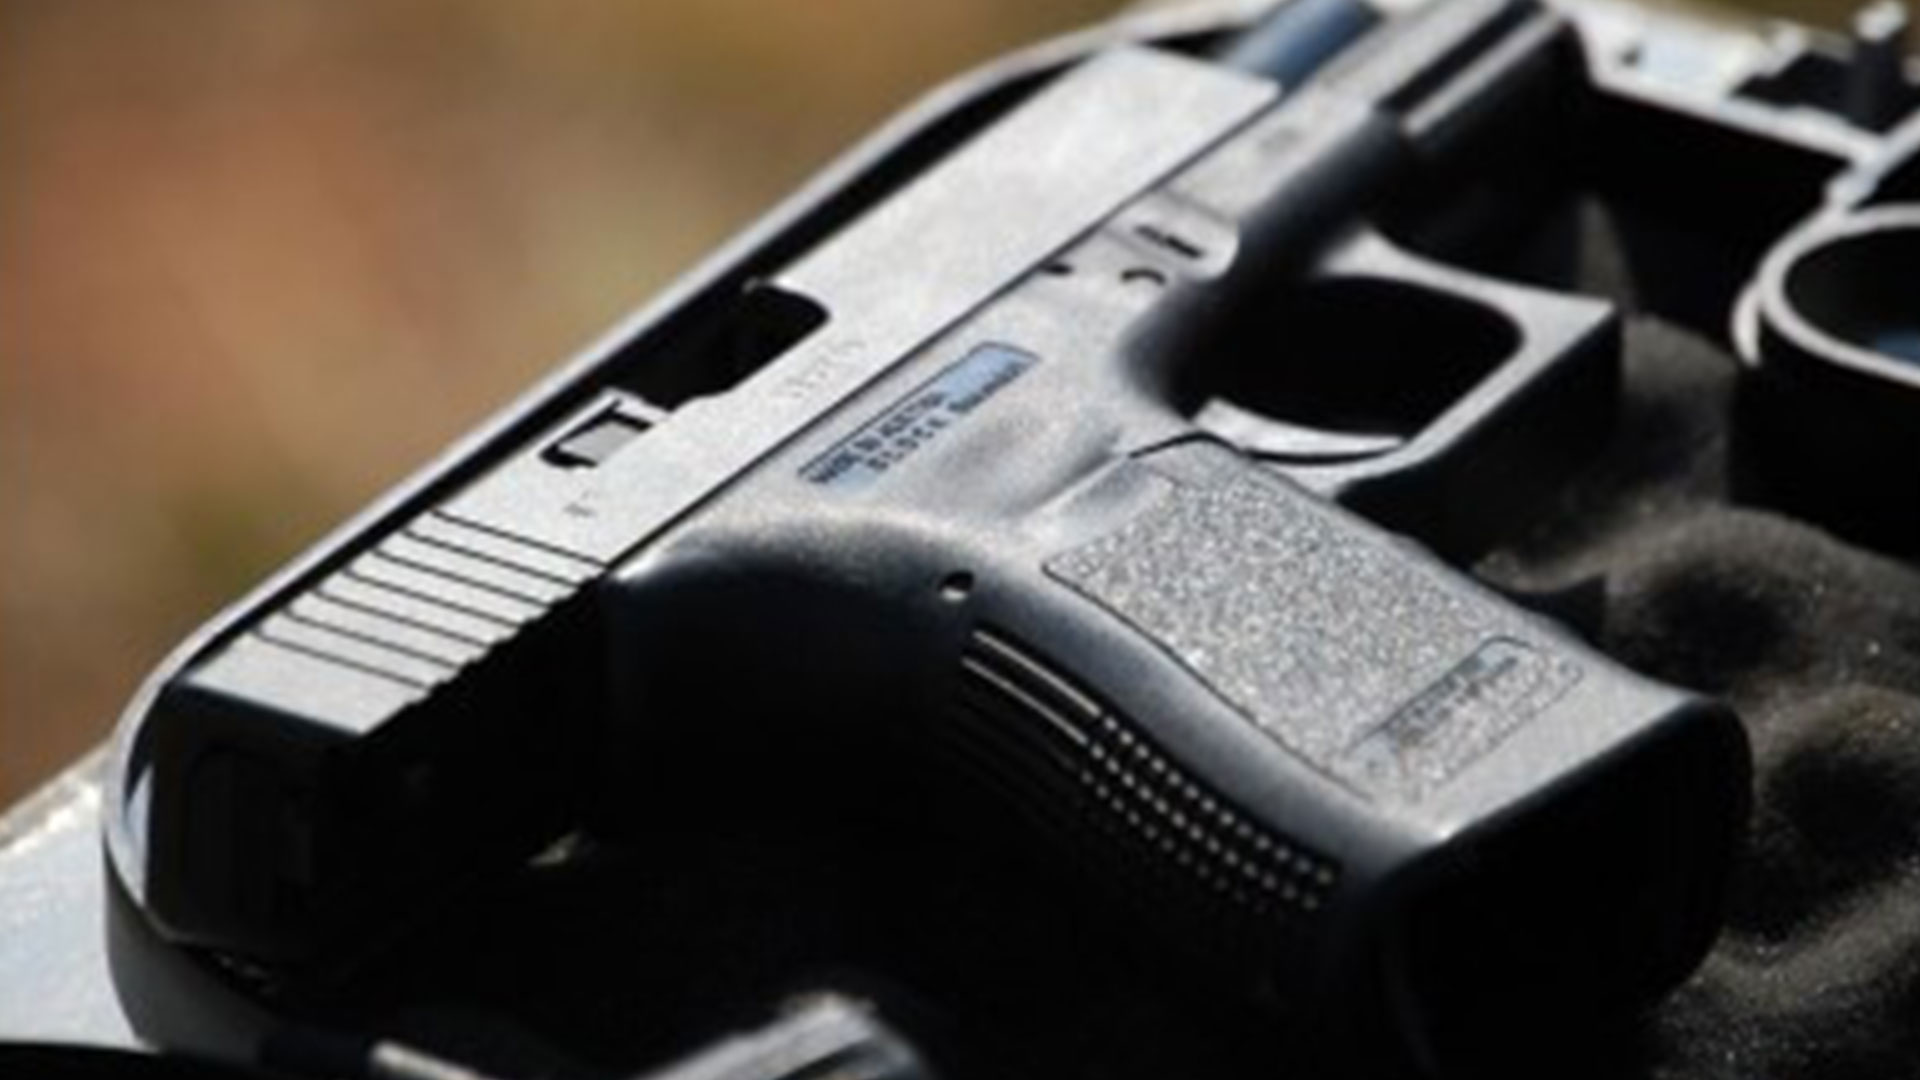 Security employee shot chasing down alleged looters